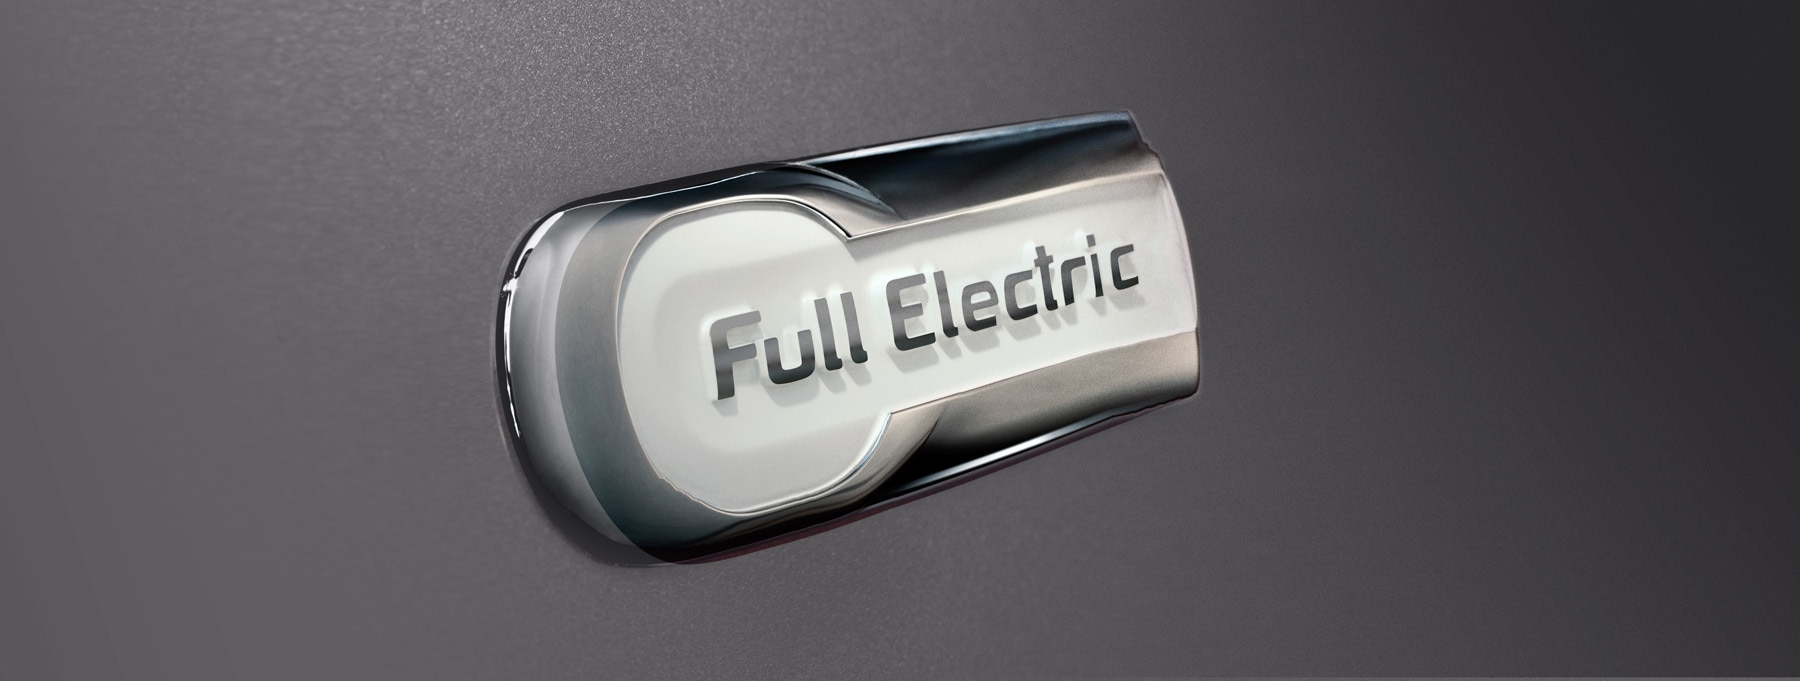 Motori - Full Electric